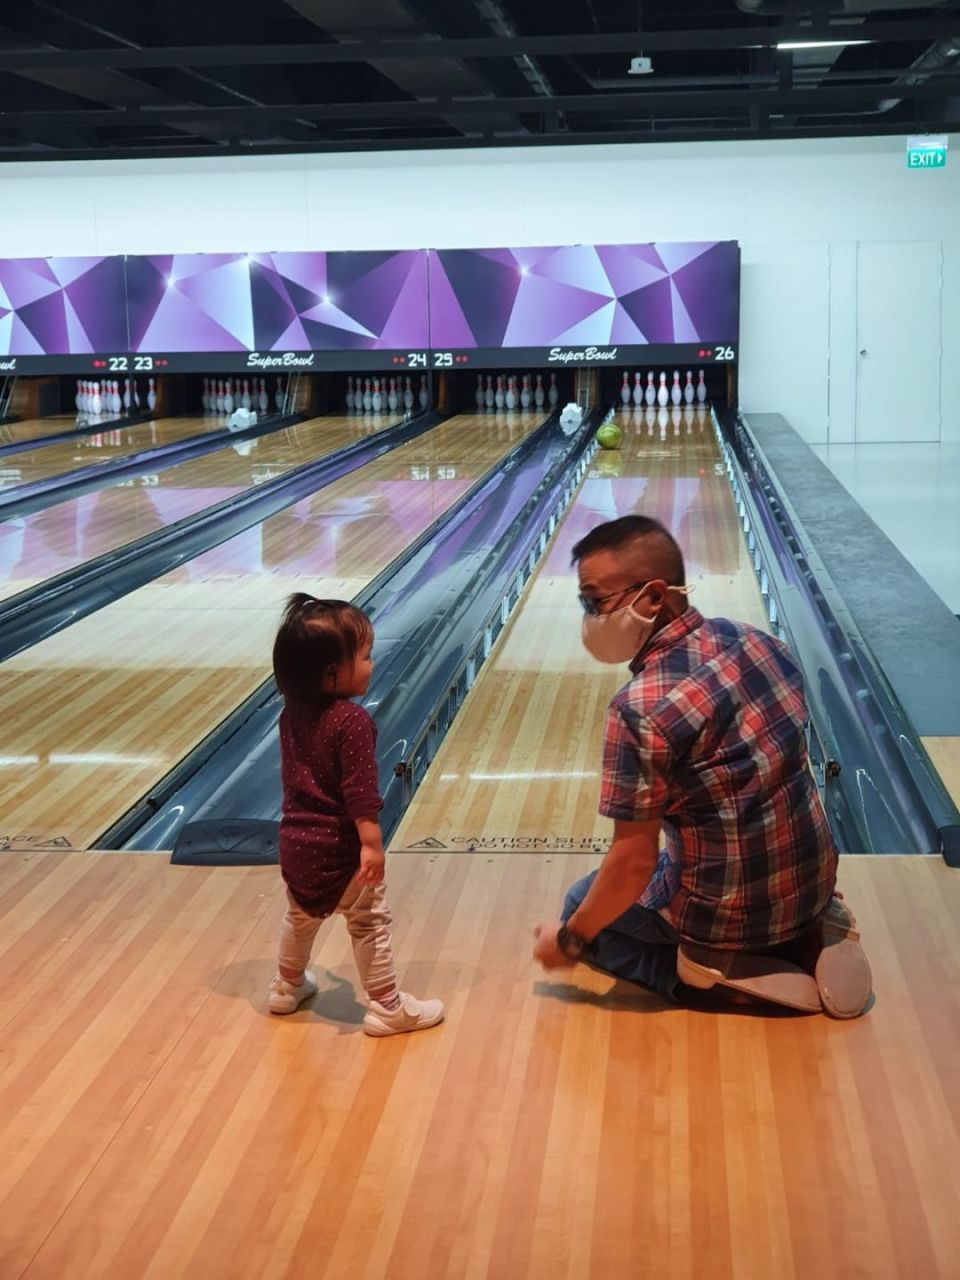 Superbowl bowling alley in singapore